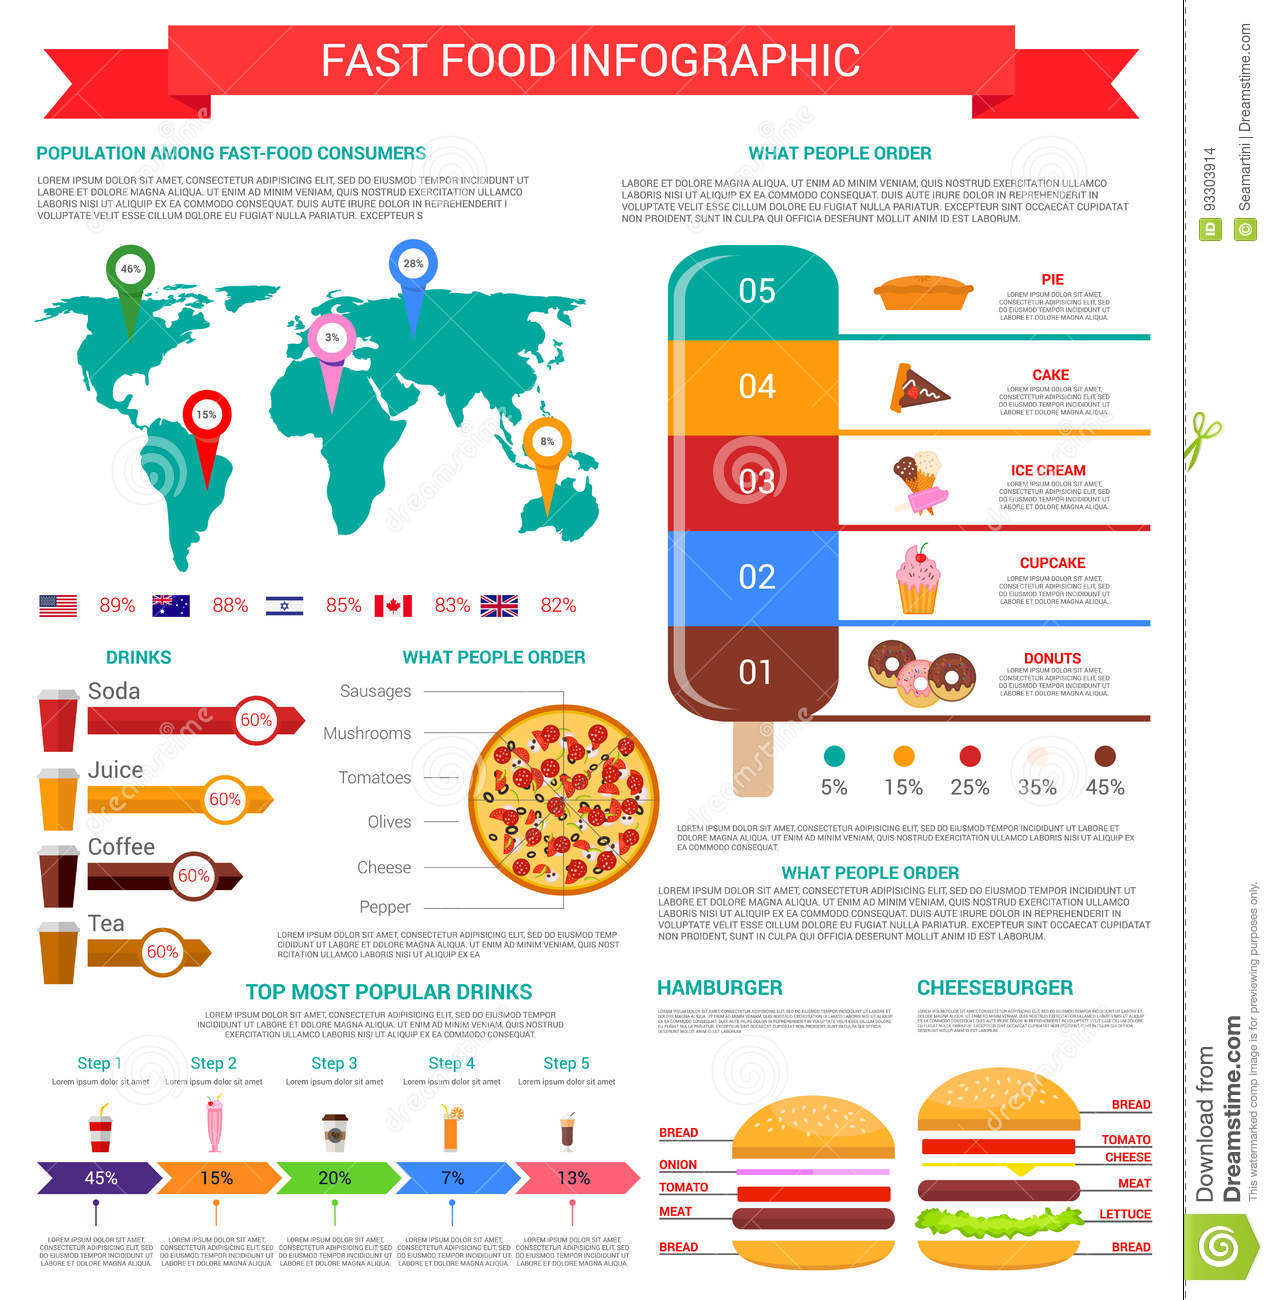 fast food infographic with burger, drink, dessert stock vector Step by Step Flowchart fast food infographic hamburger and cheeseburger ingredients diagram, pizza toppings graph, step chart of popular fast food drink and dessert,